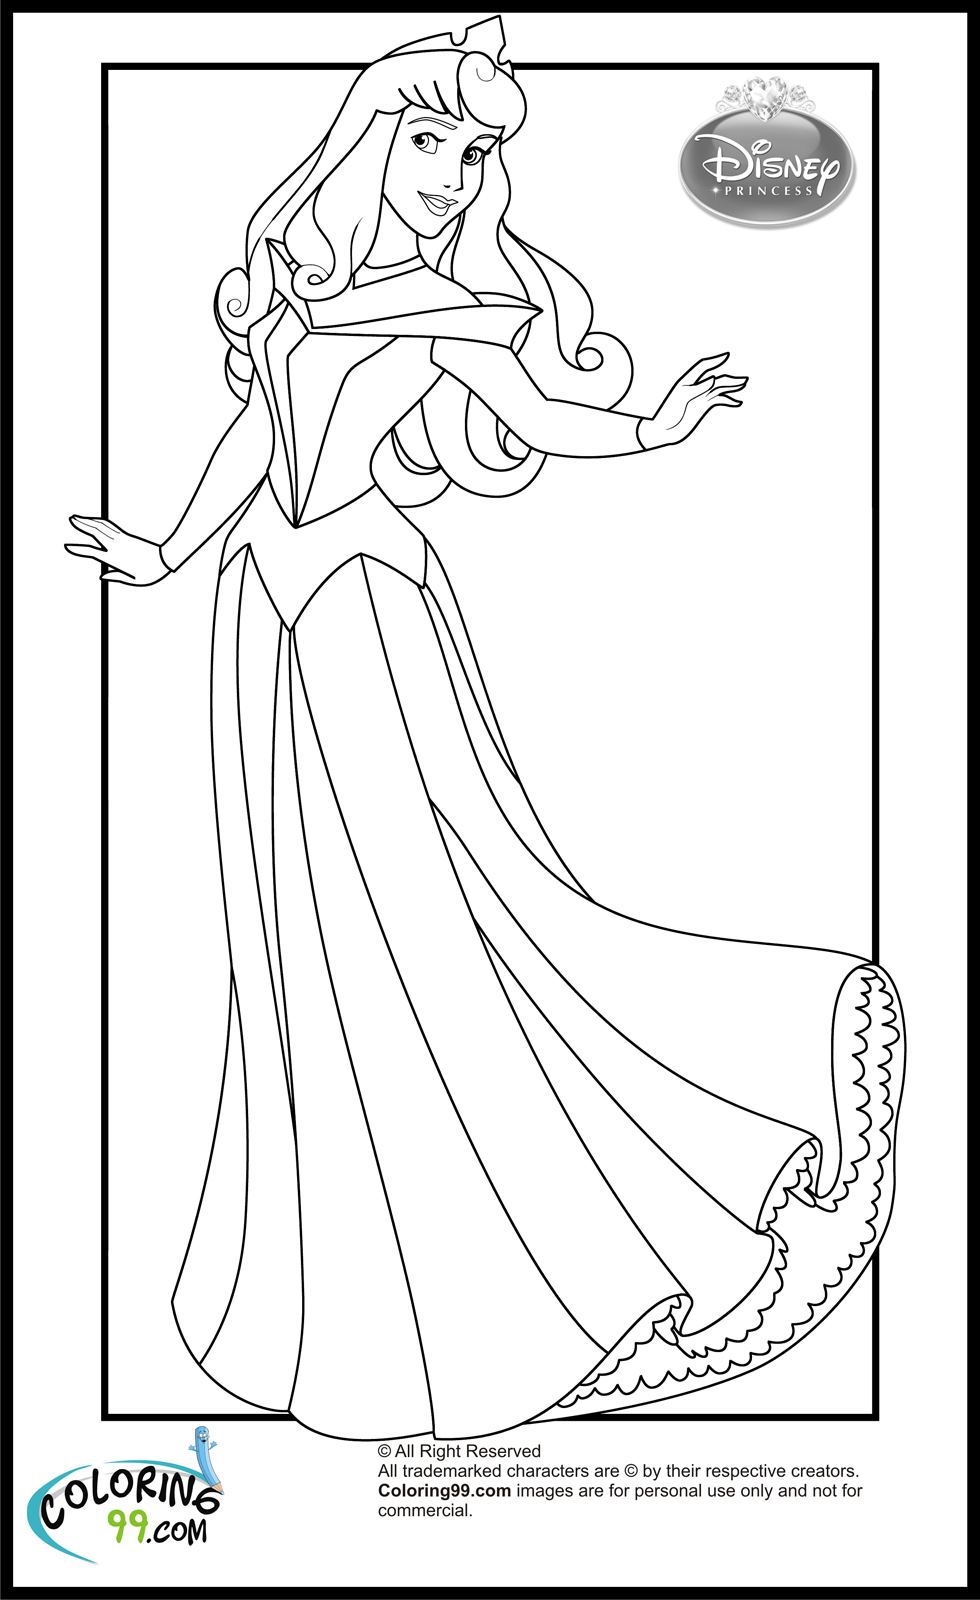 princess aurora pictures to color beauty princess aurora coloring pages gtgt disney coloring pages to pictures aurora color princess